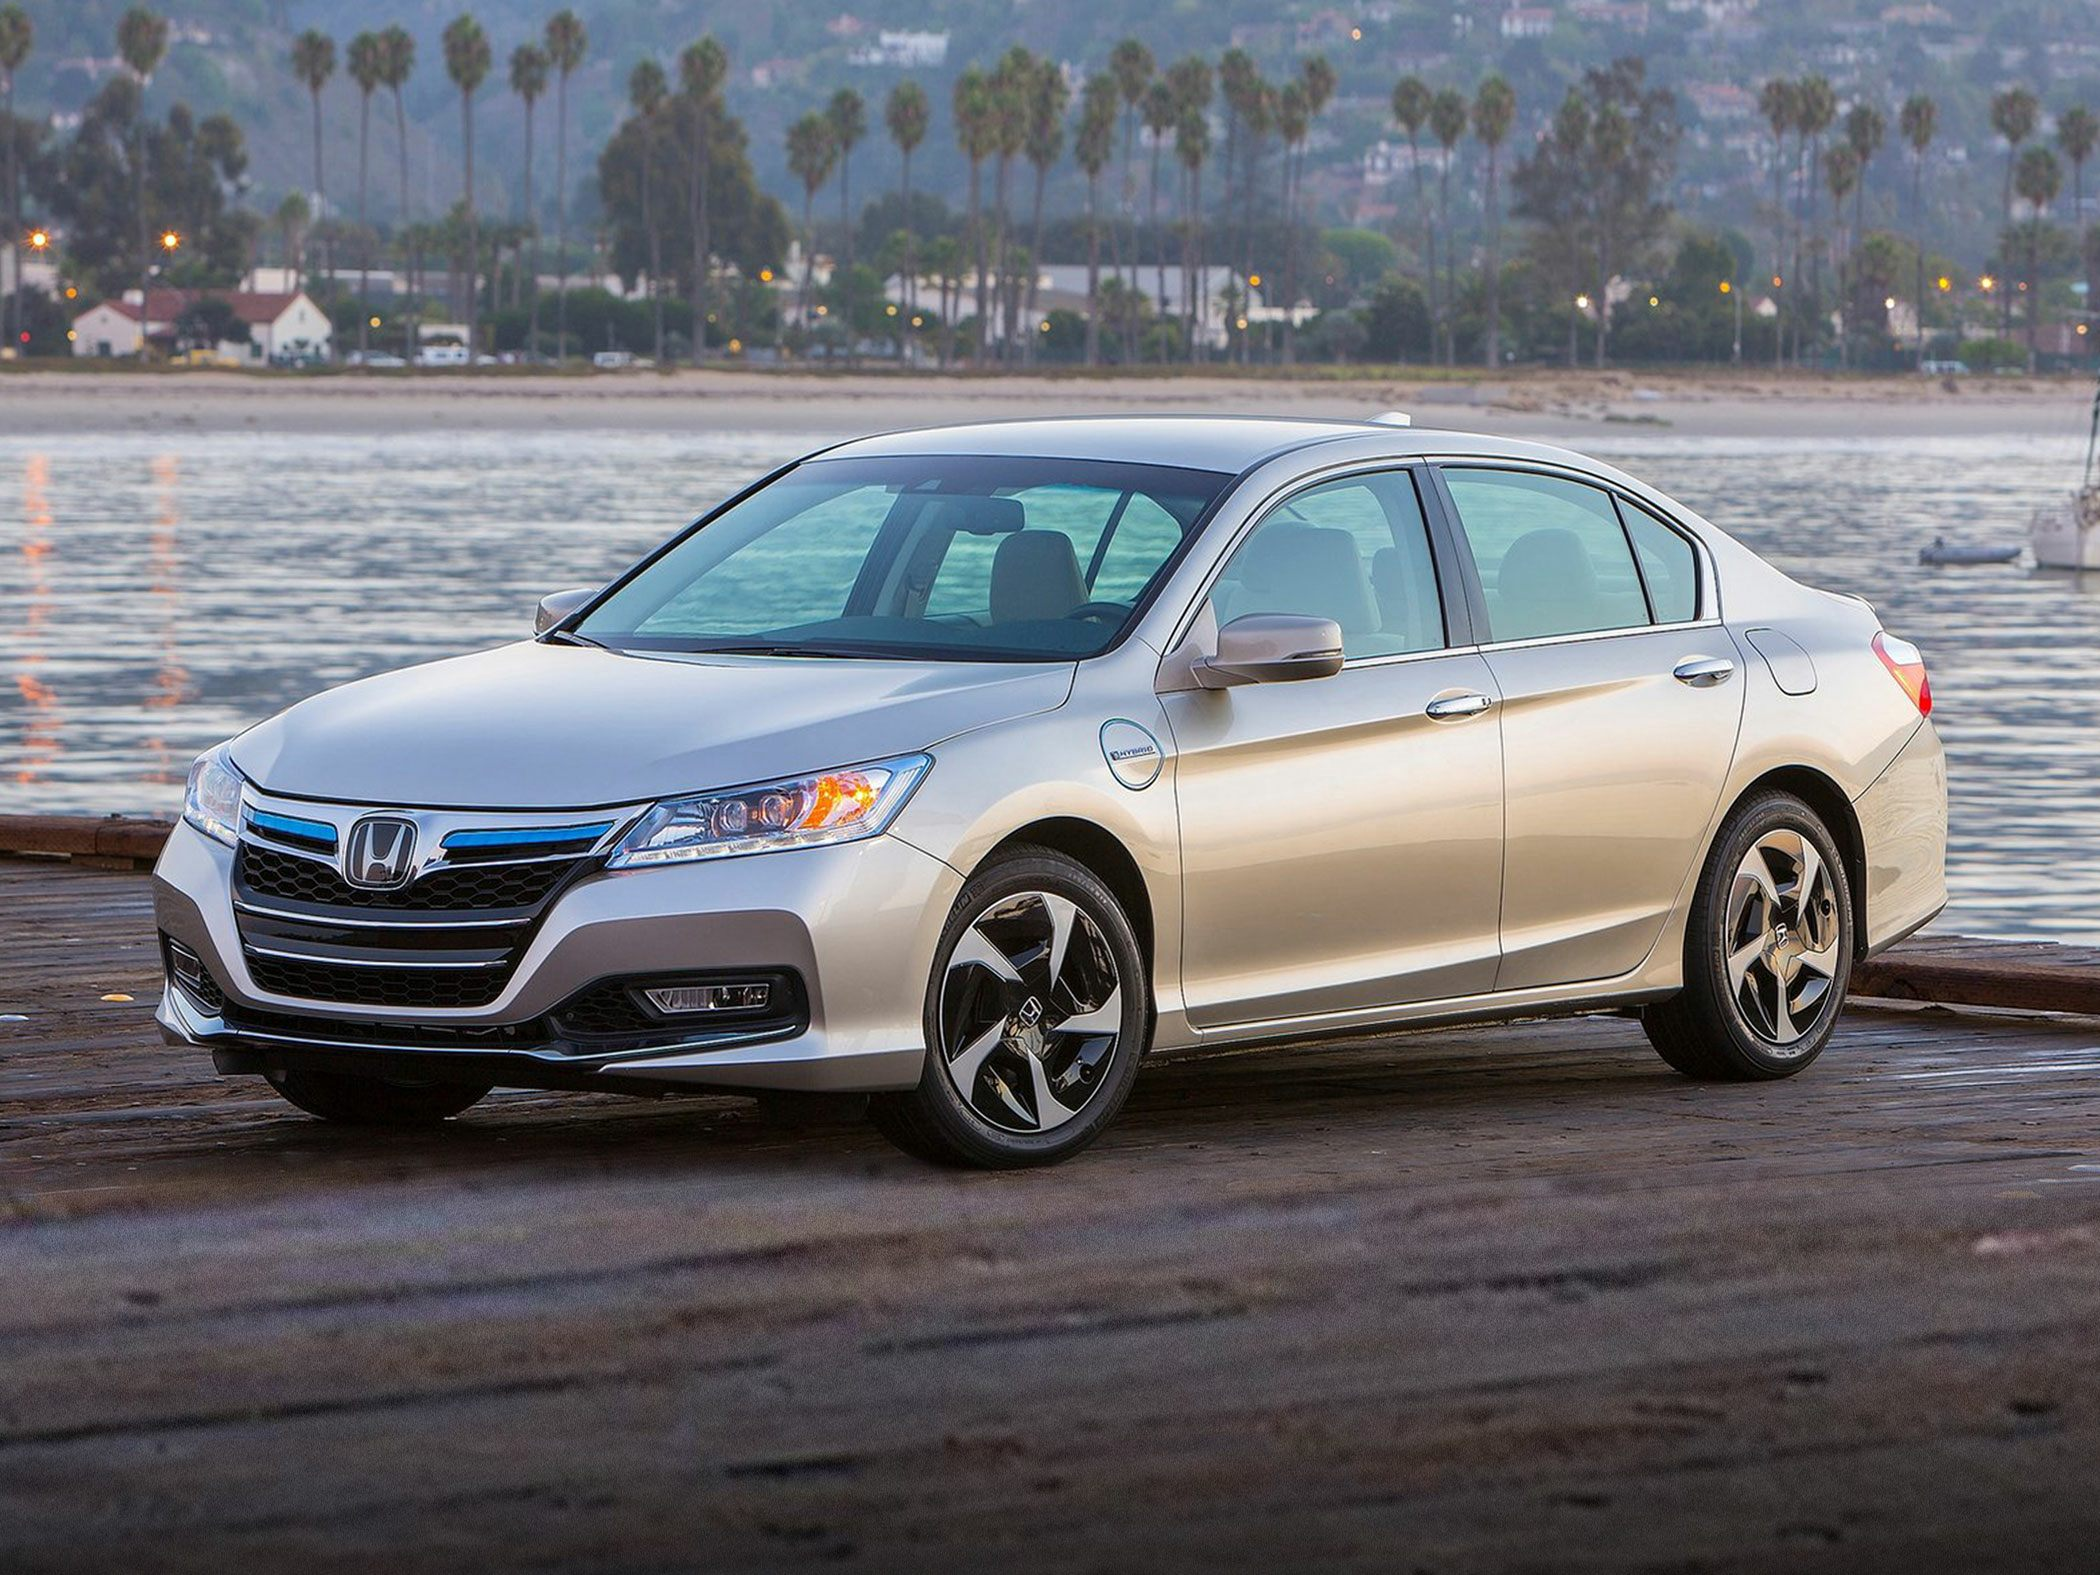 2014 Honda Accord Plug-In Hybrid Glam